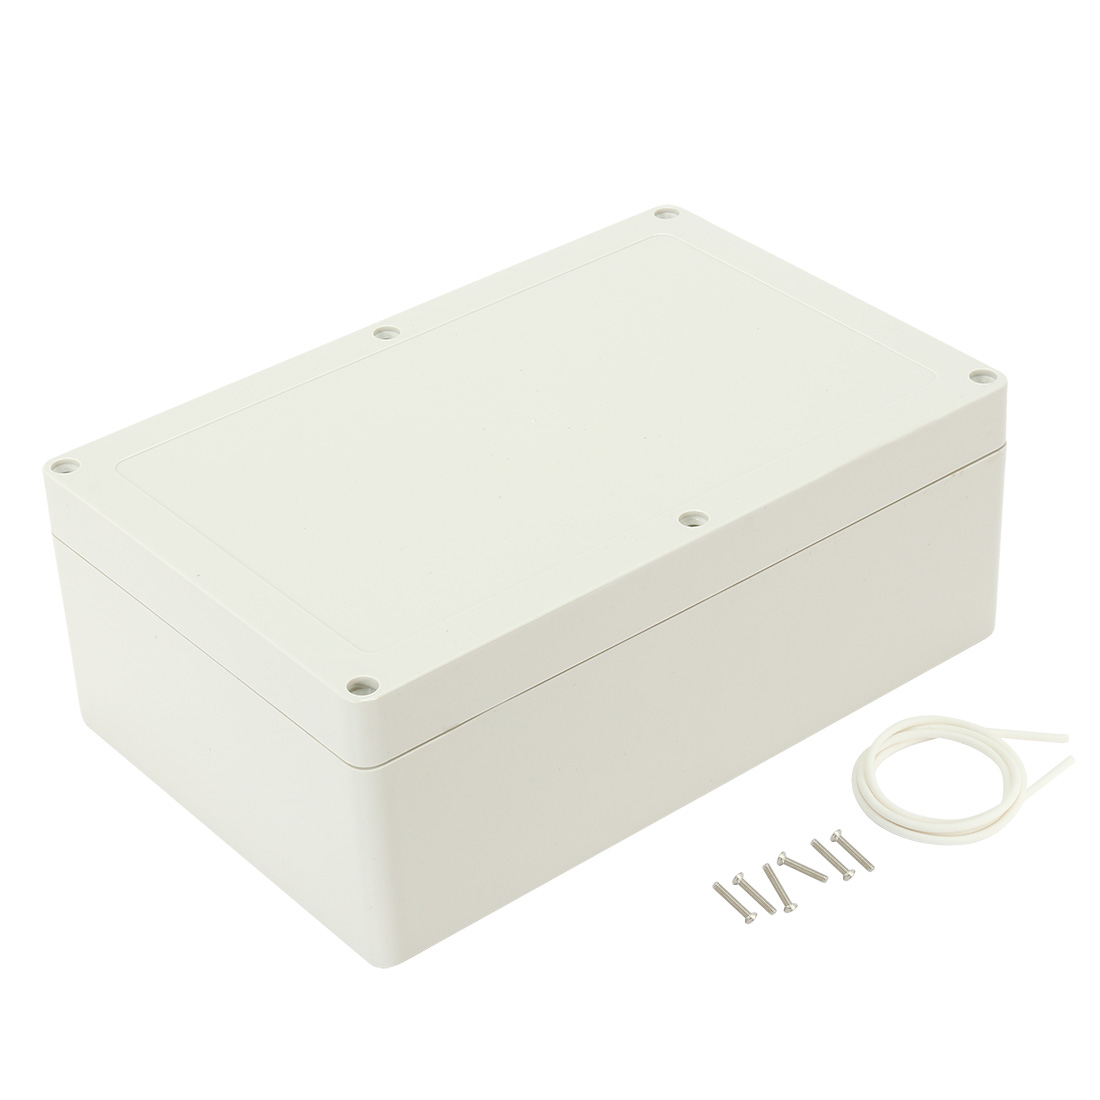 """9""""x5.9""""x3.43""""(230mmx150mmx87mm) ABS Junction Box Universal Electric Project Enclosure"""